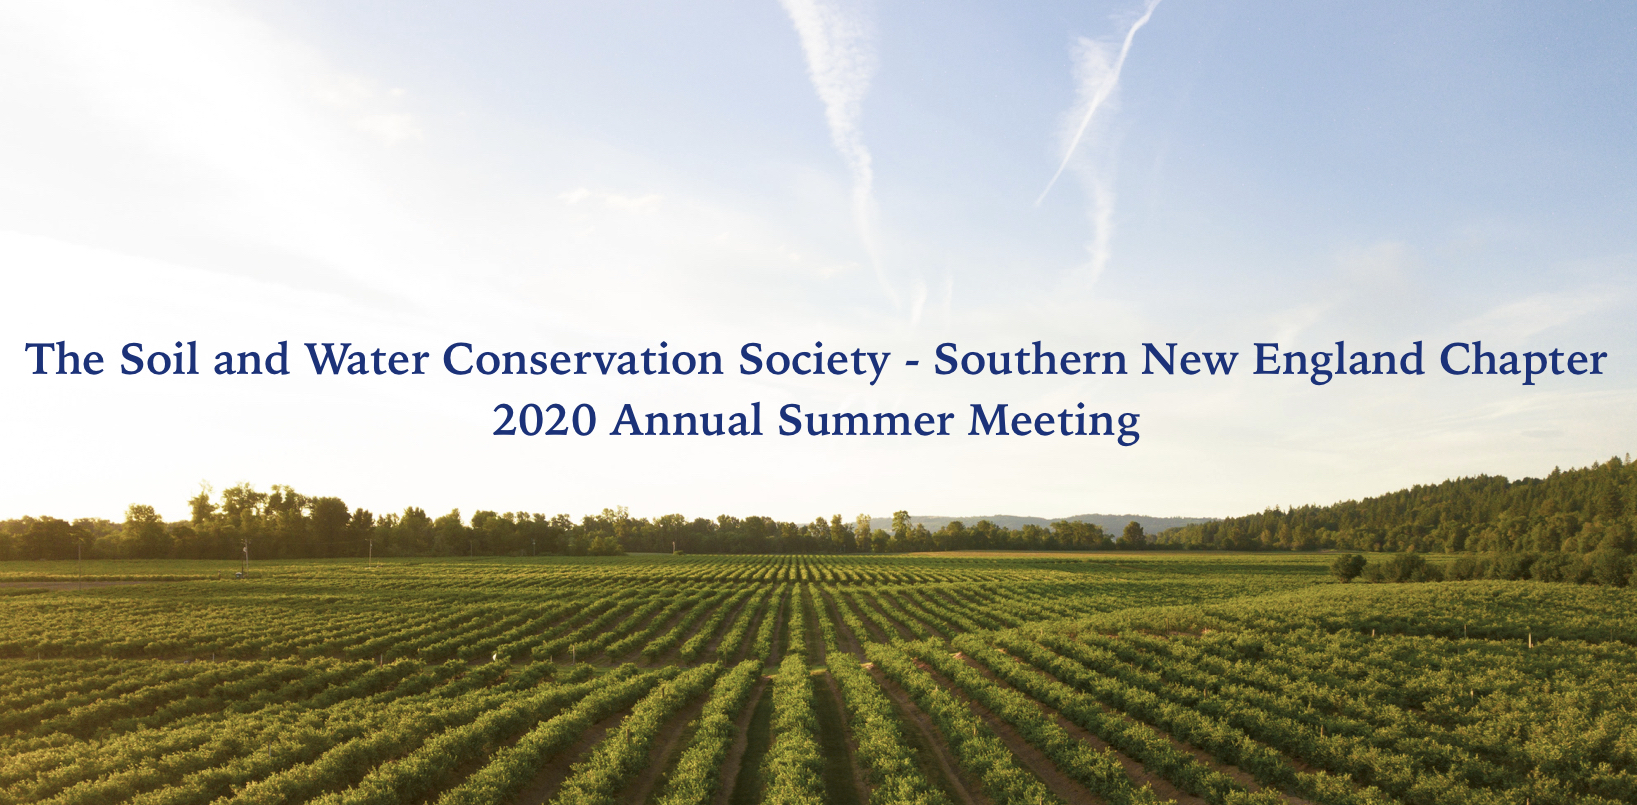 SWCS SNEC 2020 Annual Summer Meeting